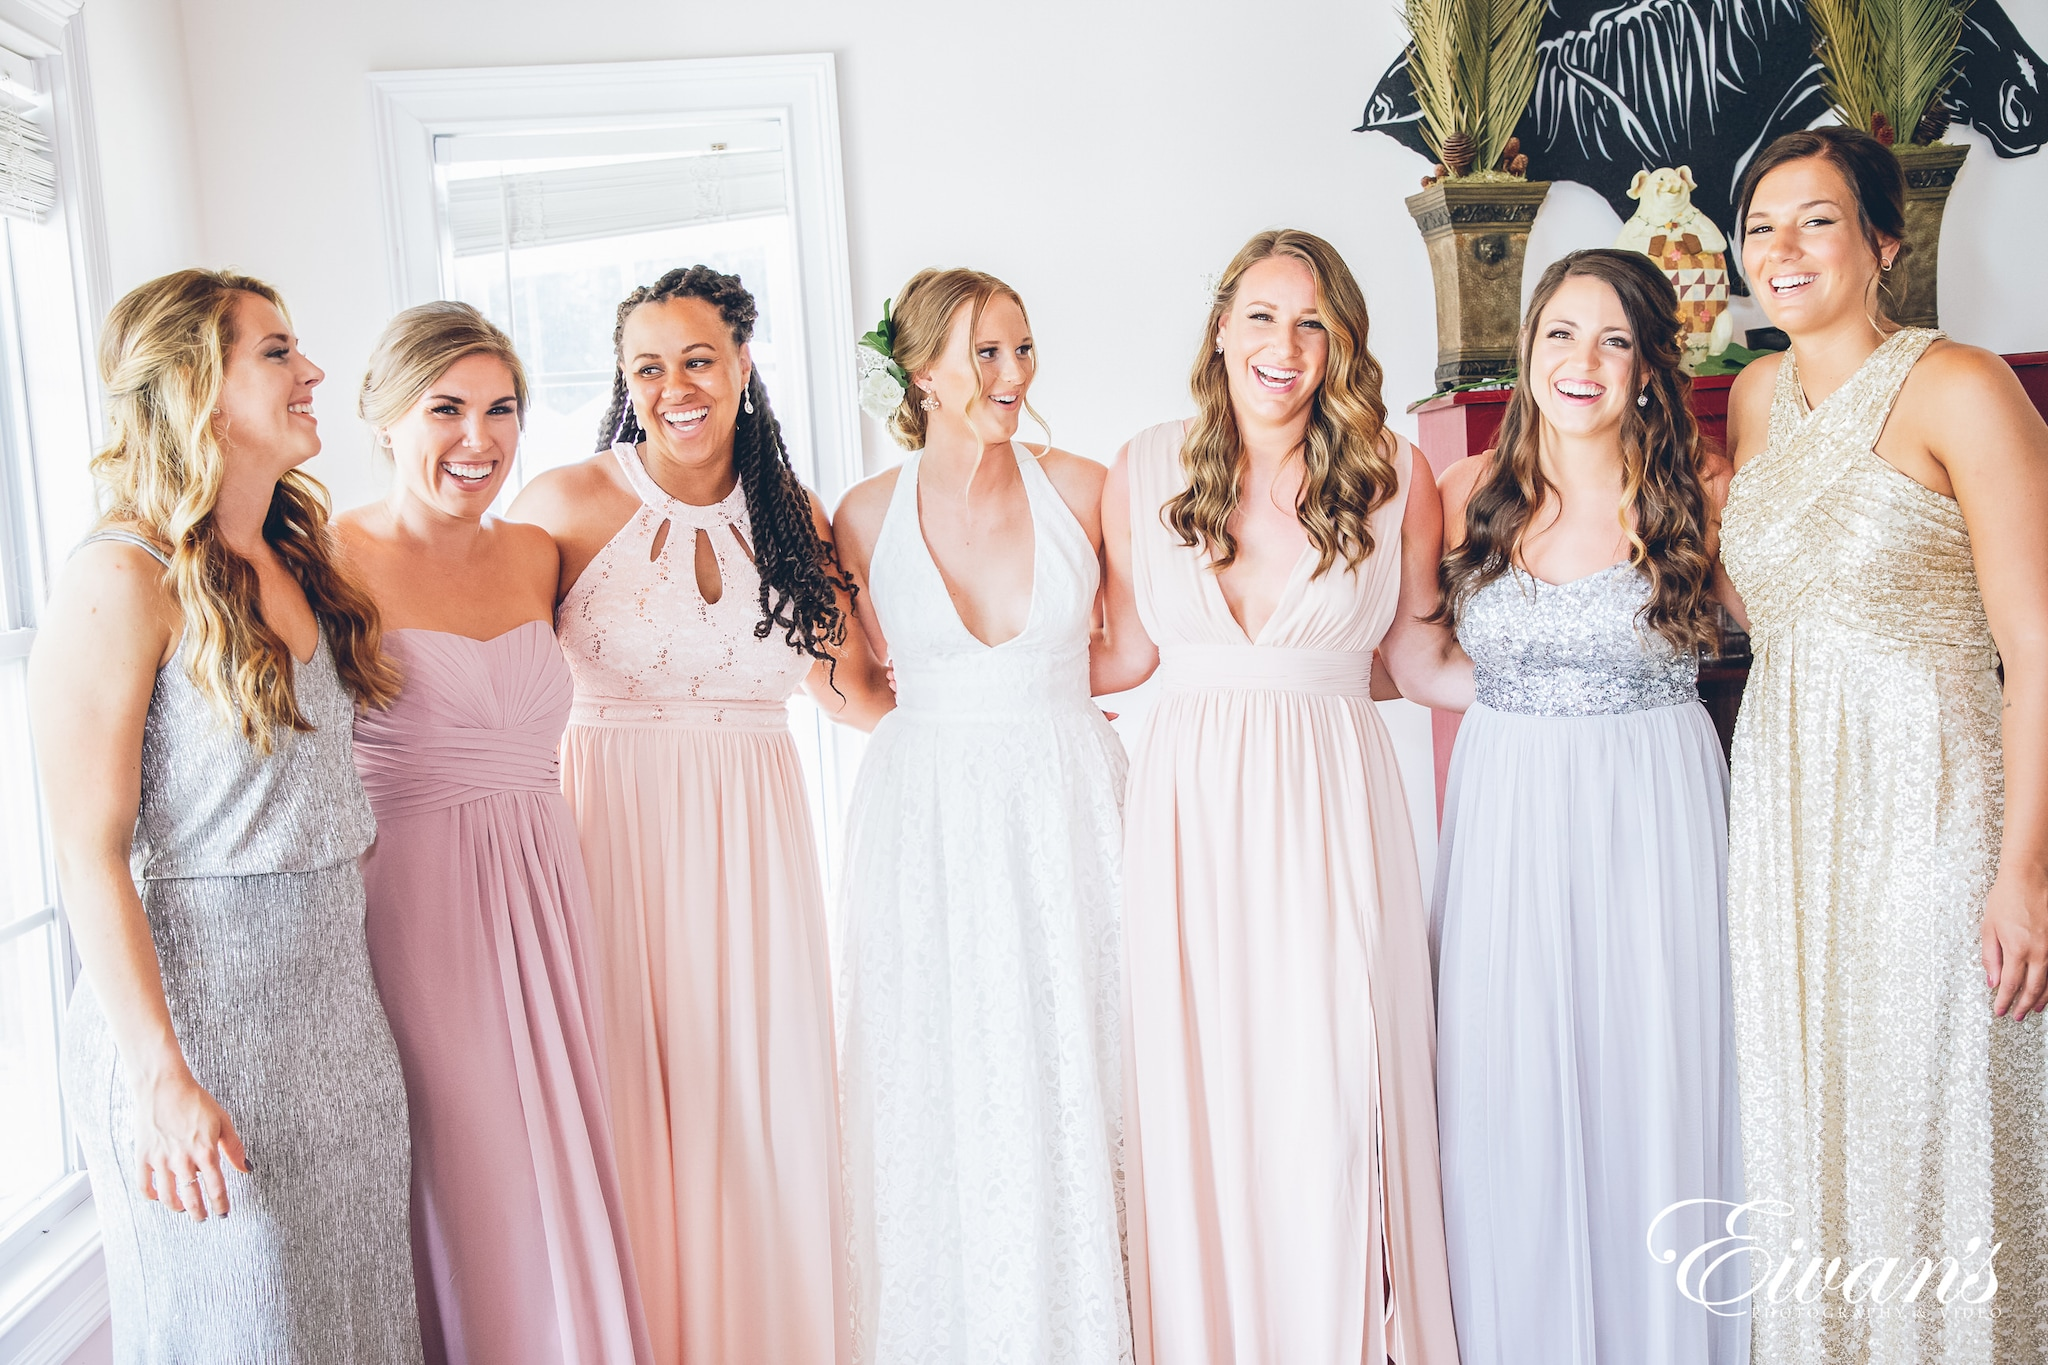 woman in a white dress with her bridesmaids